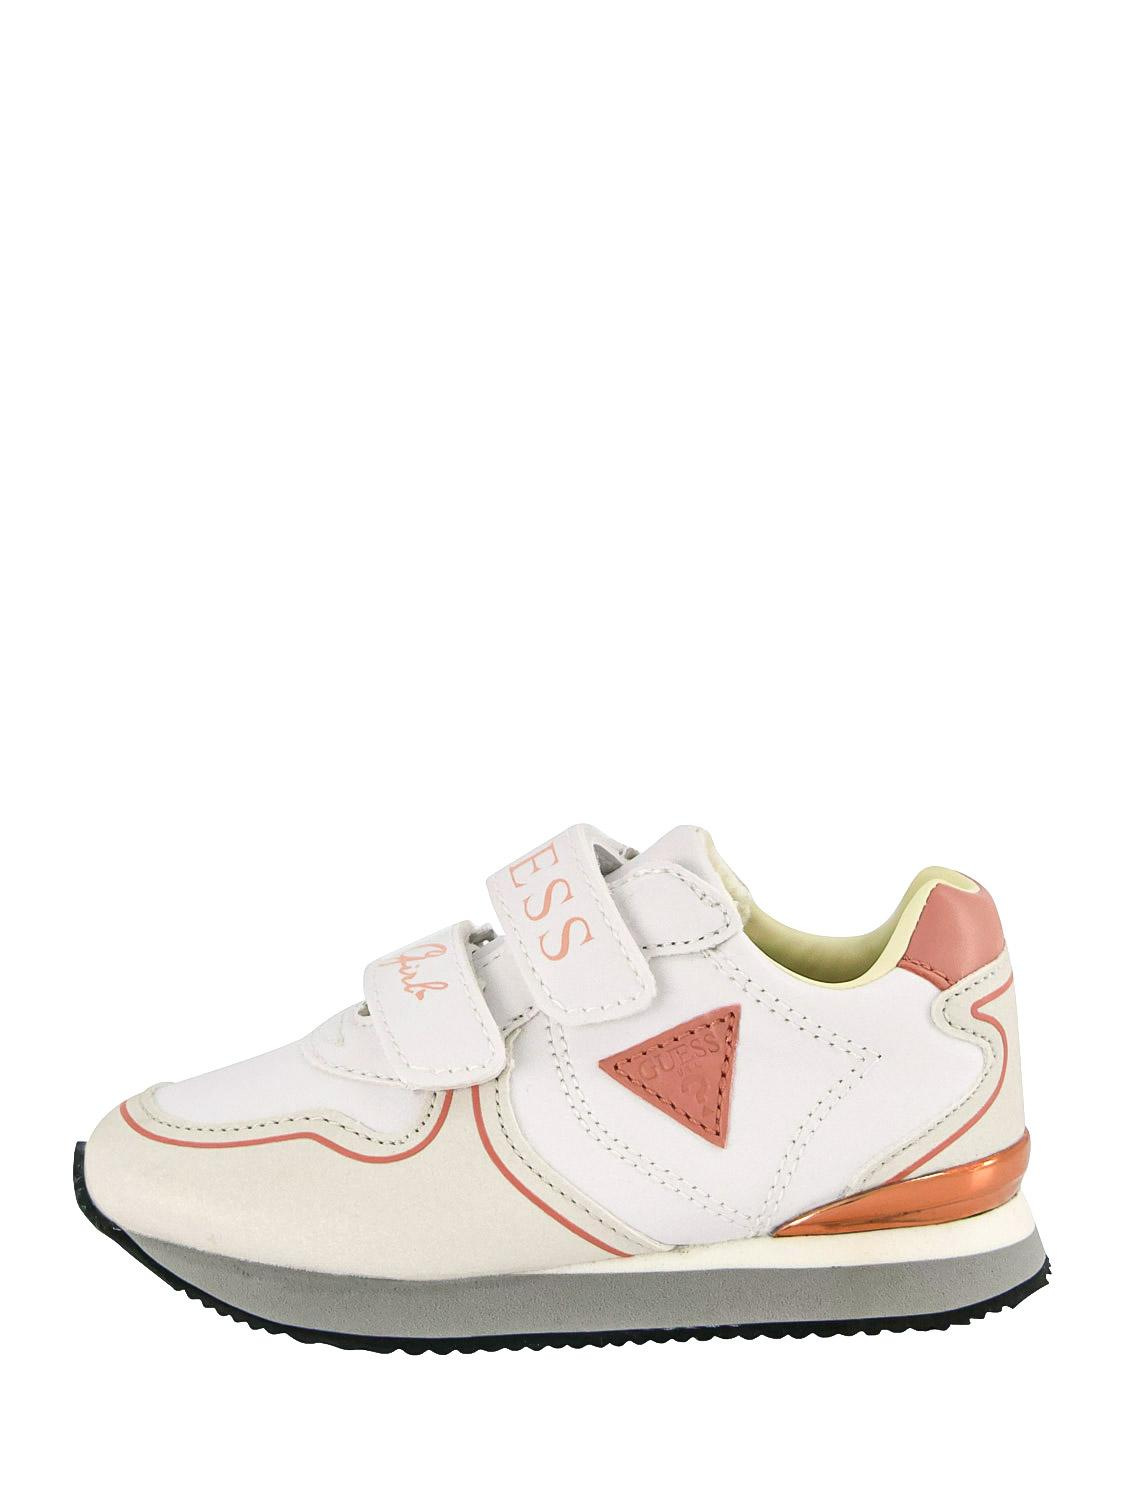 GUESS sneakers white for girls| NICKIS.com